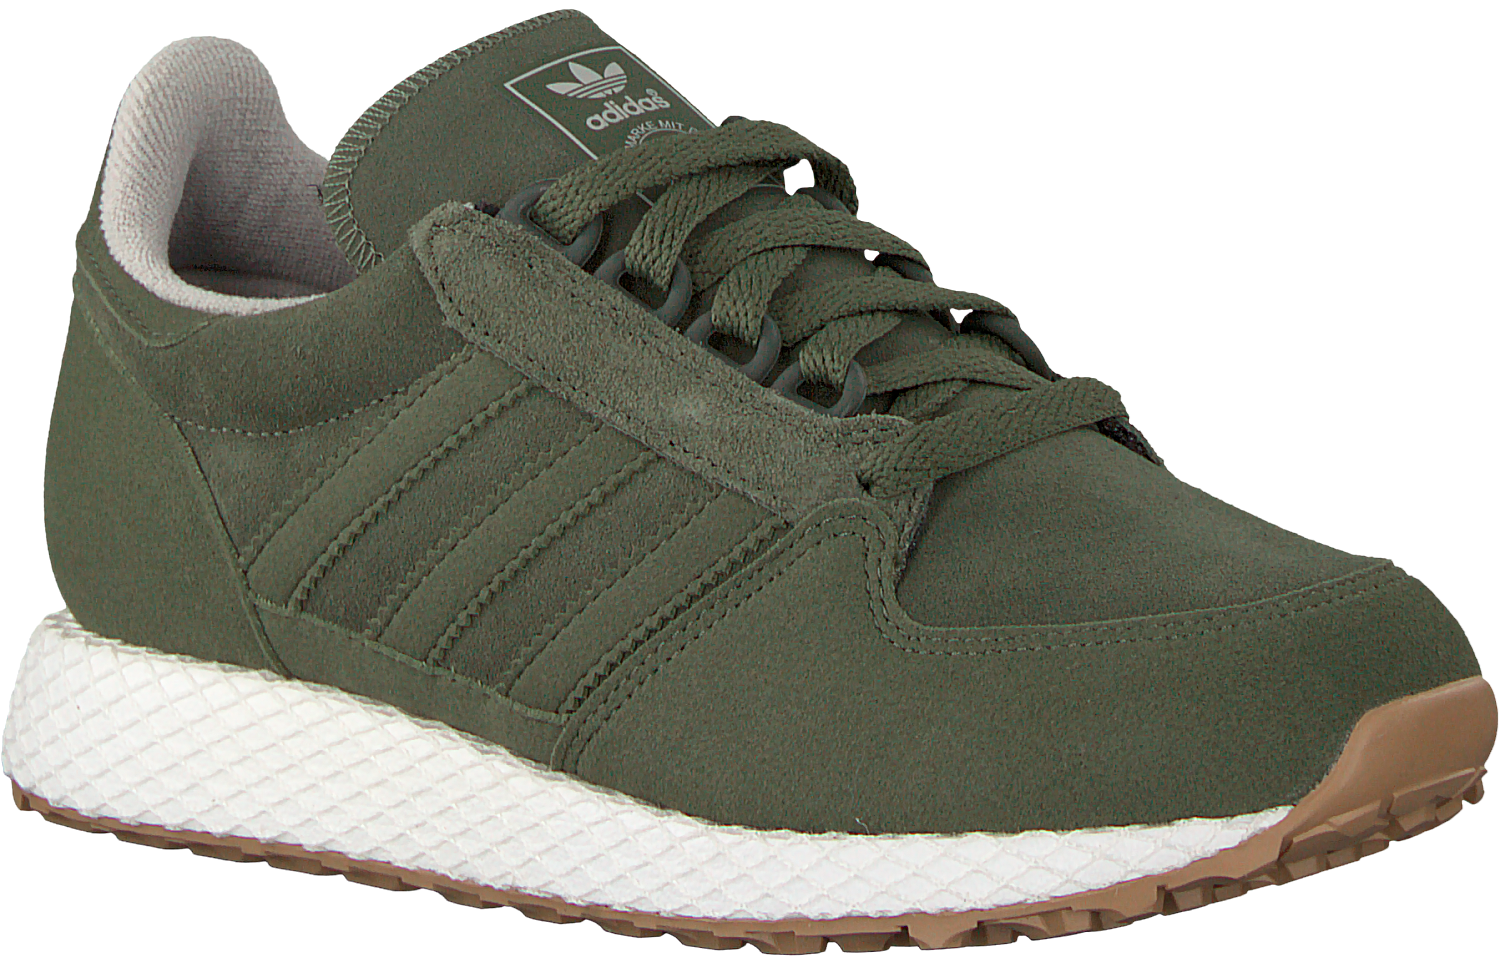 0c672a684a2 Groene ADIDAS Sneakers FOREST GROVE J. ADIDAS. -20%. Previous